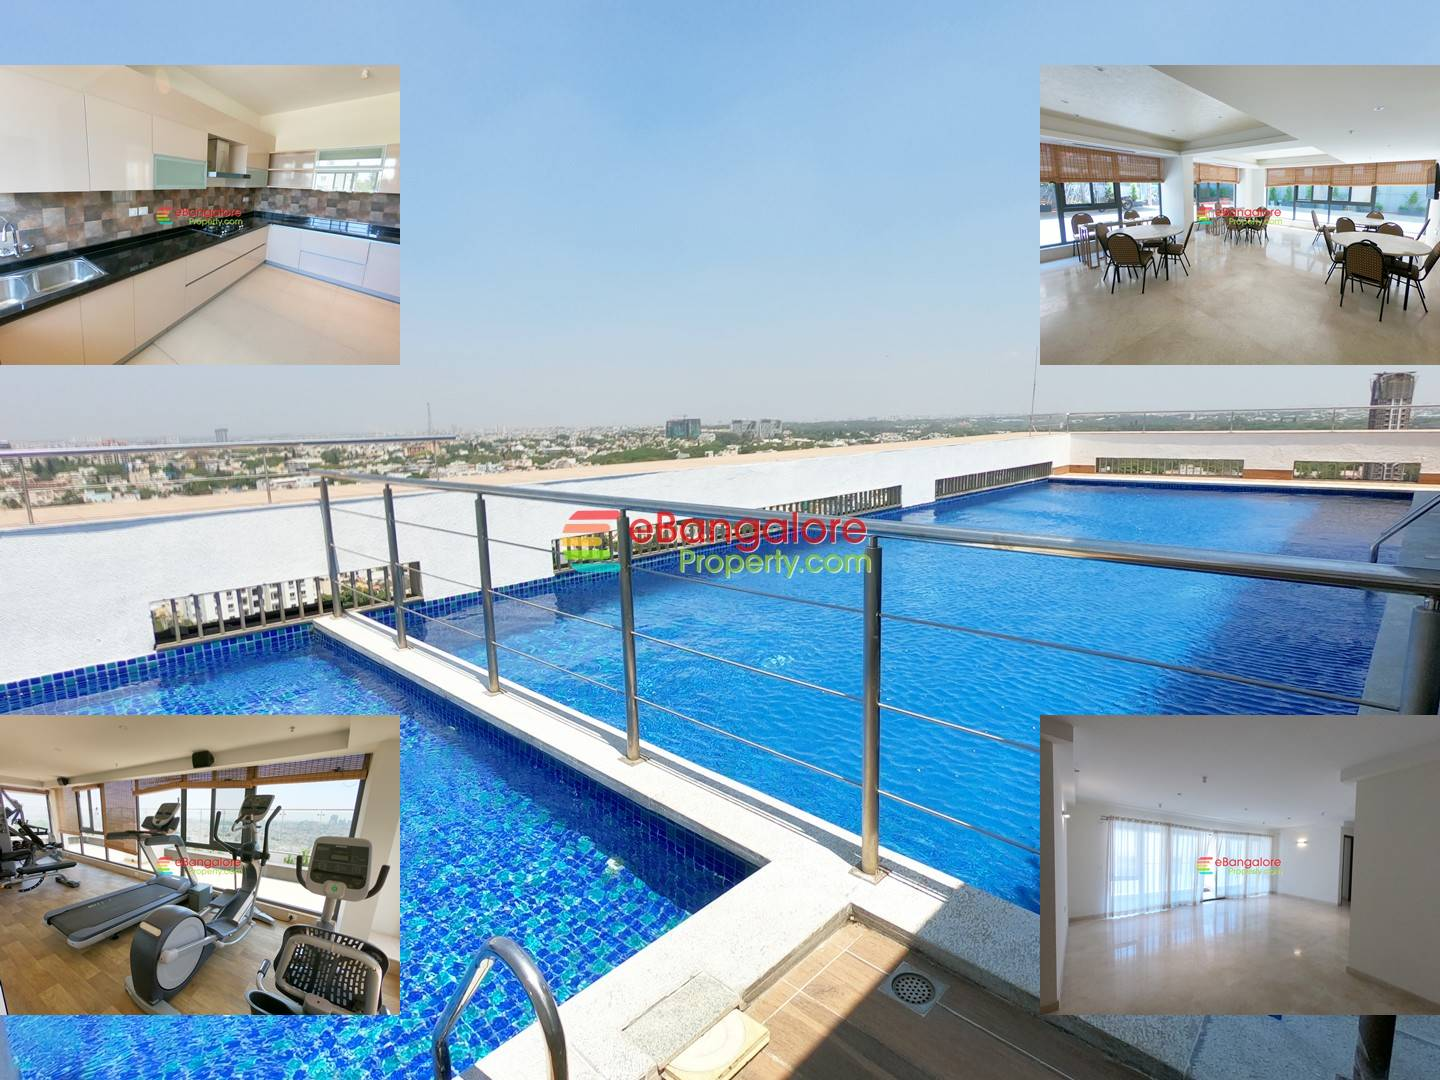 Frazer Town – 3BHK Premium Apartment For Sale in a Prestige High Rise – With Rooftop Swimming Pool